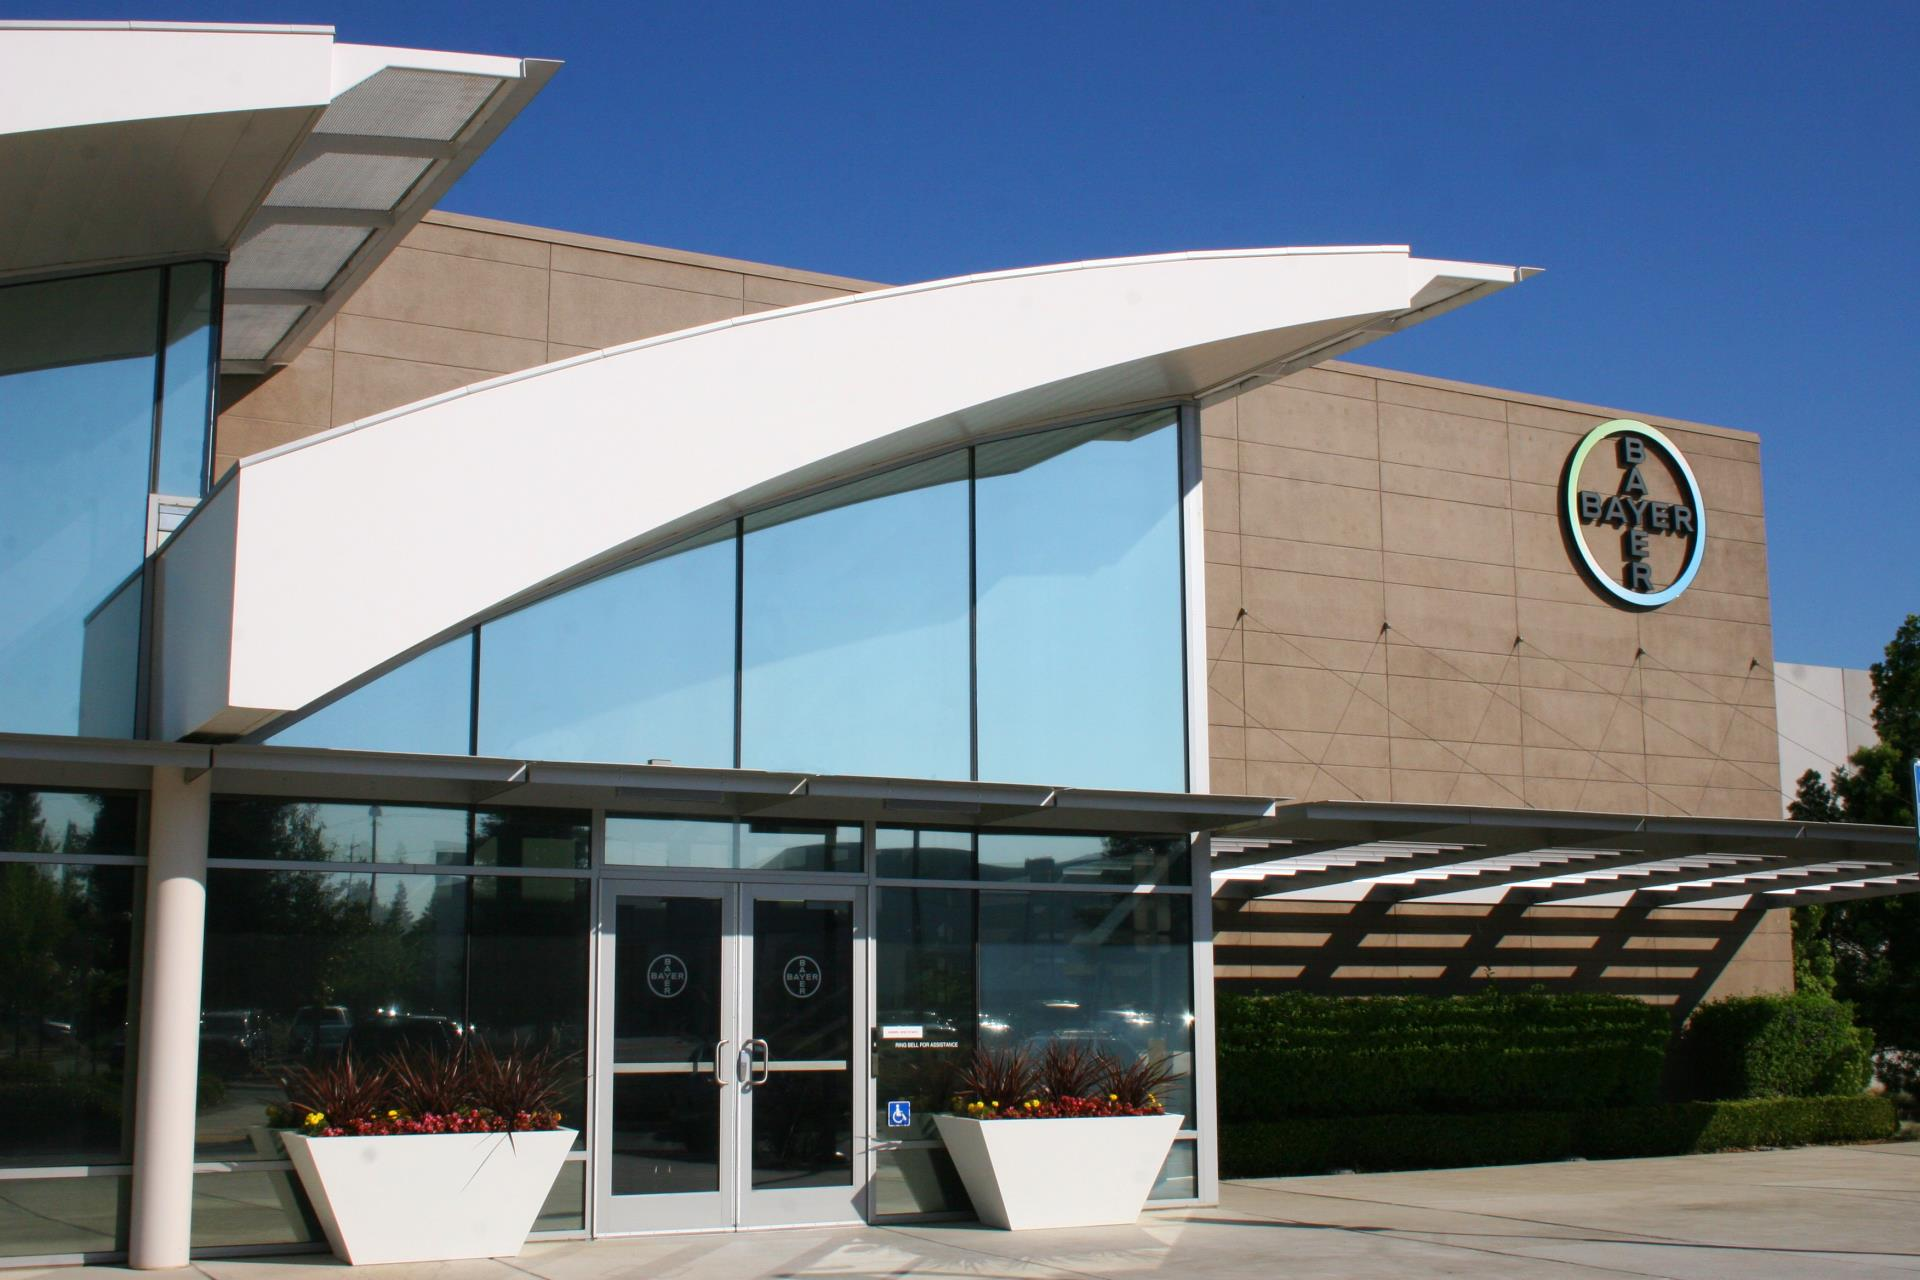 Bayer Crop Science Building in West Sacramento